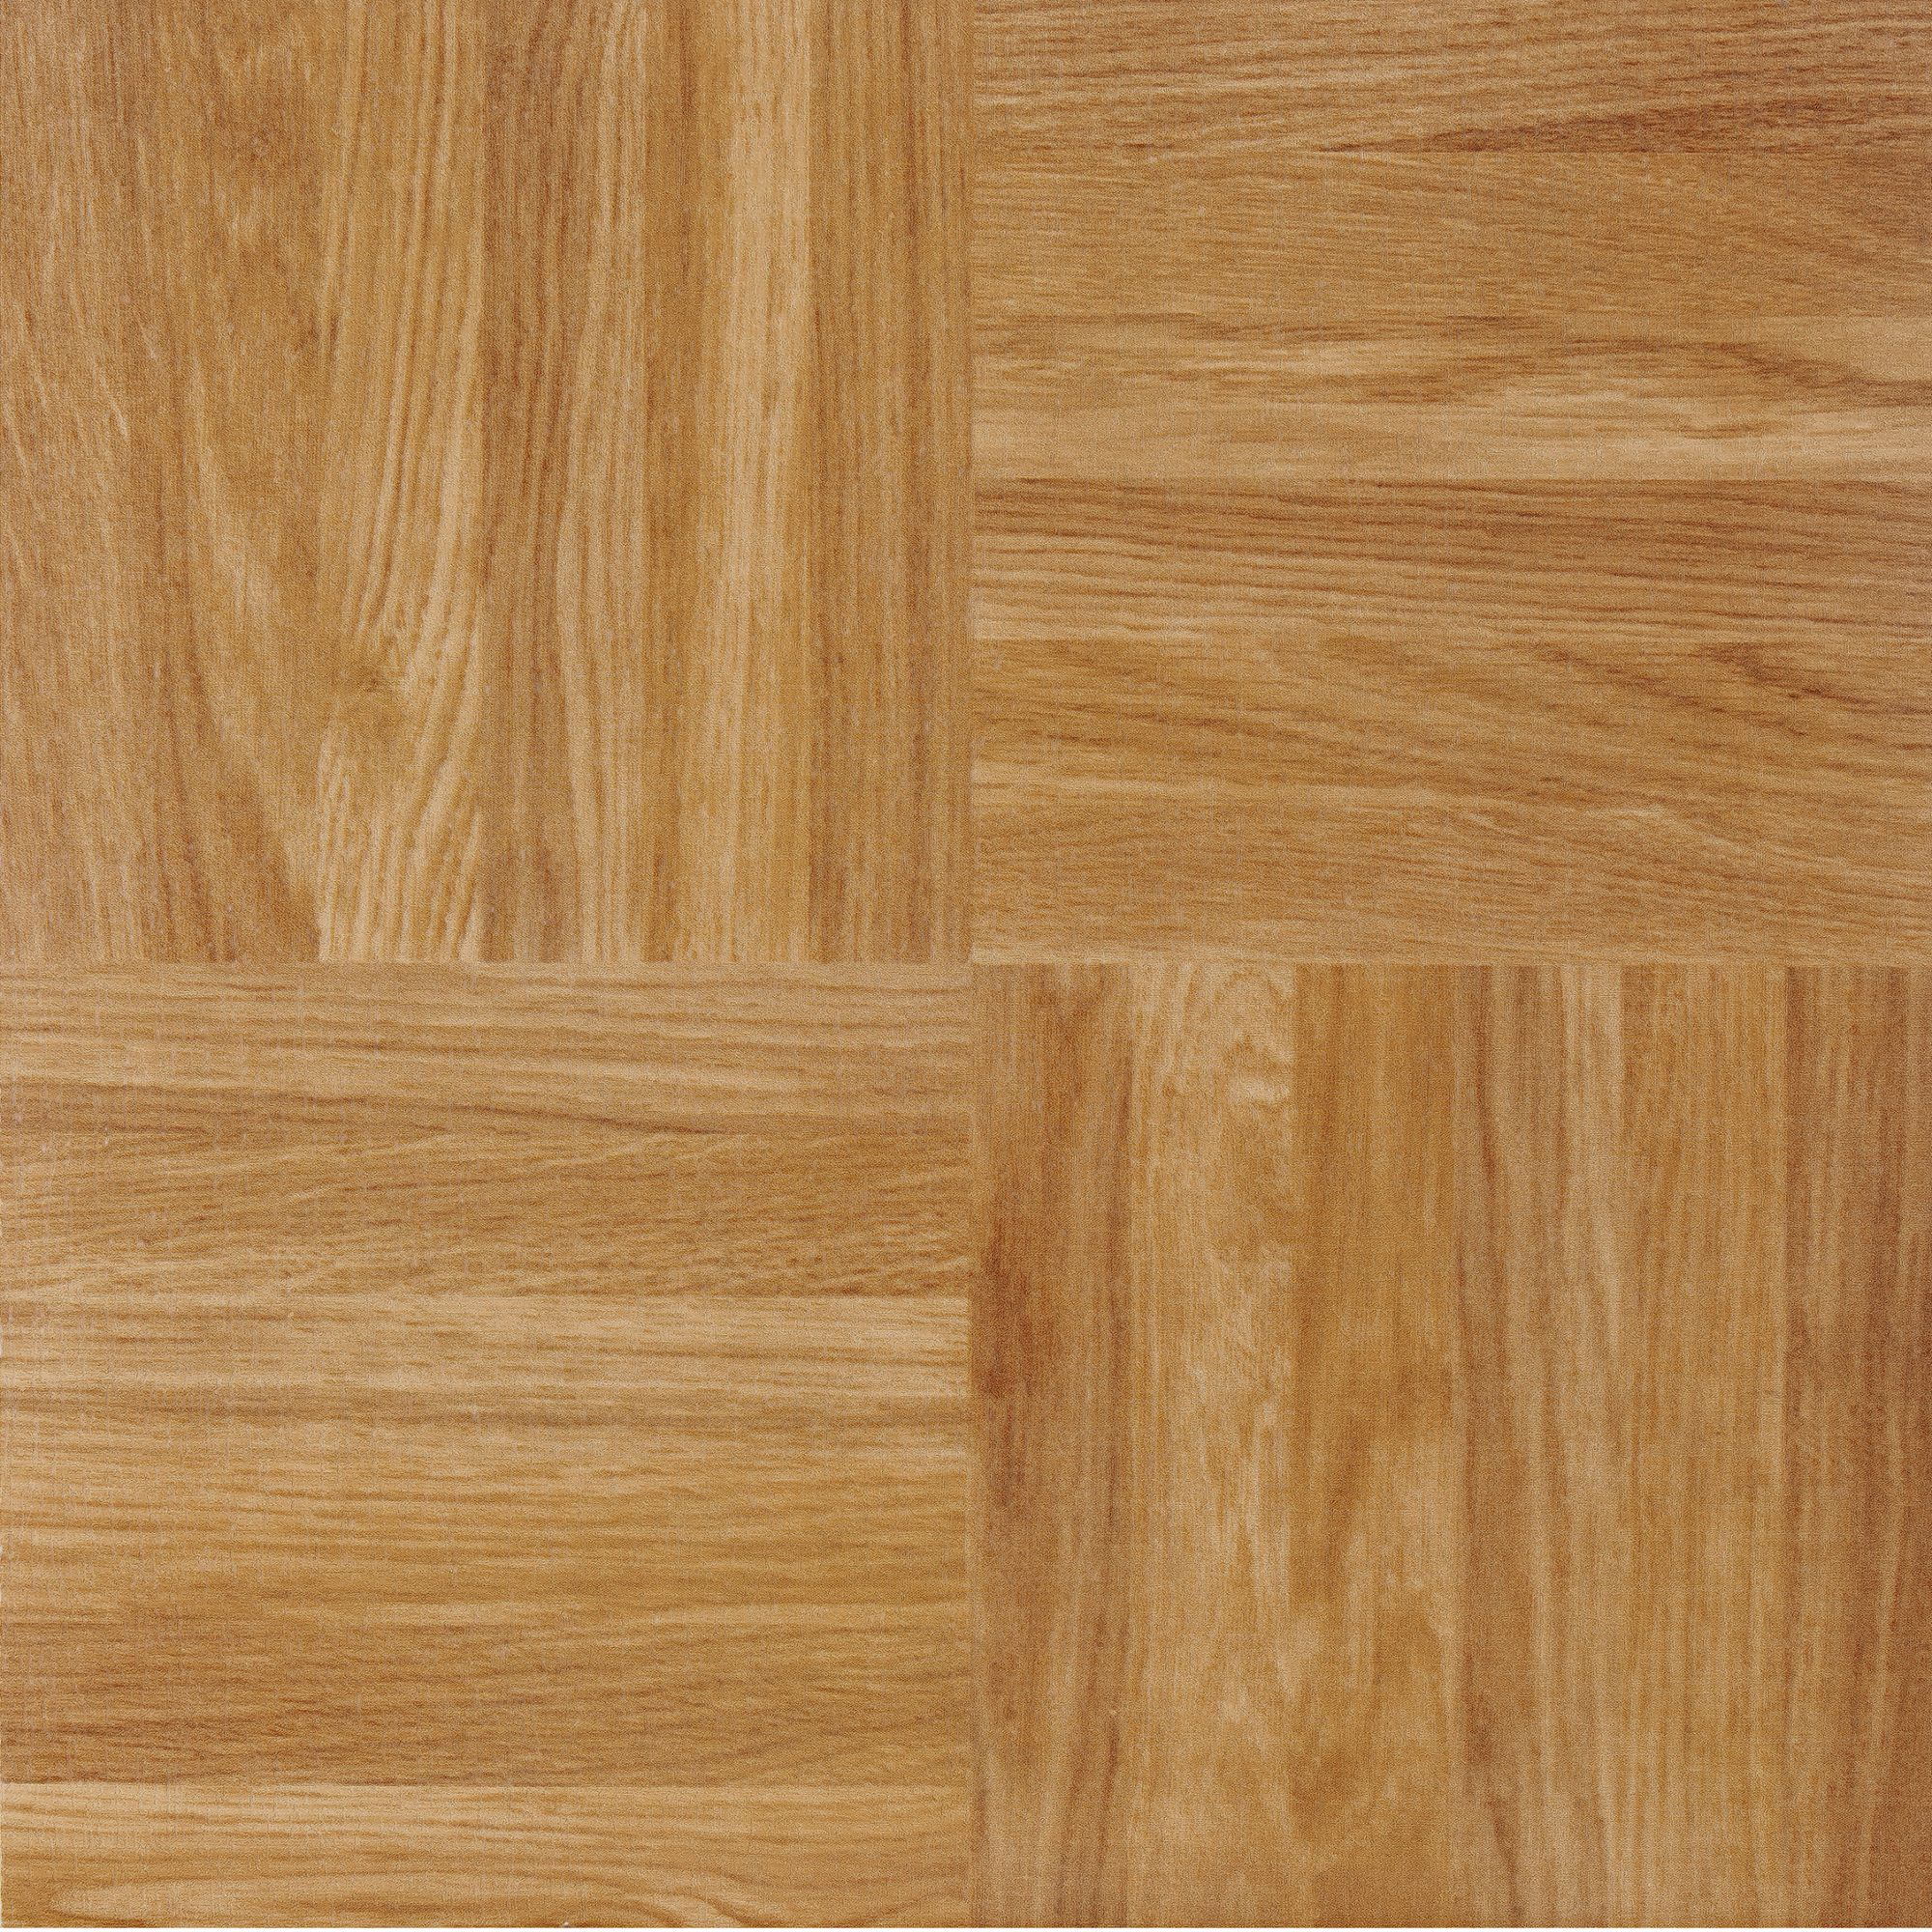 Pack Achim Home Furnishings FTVWD20220 Nexus 12-Inch Vinyl Tile Classic Light Oak Diamond Parquet Wood Ligh 3-